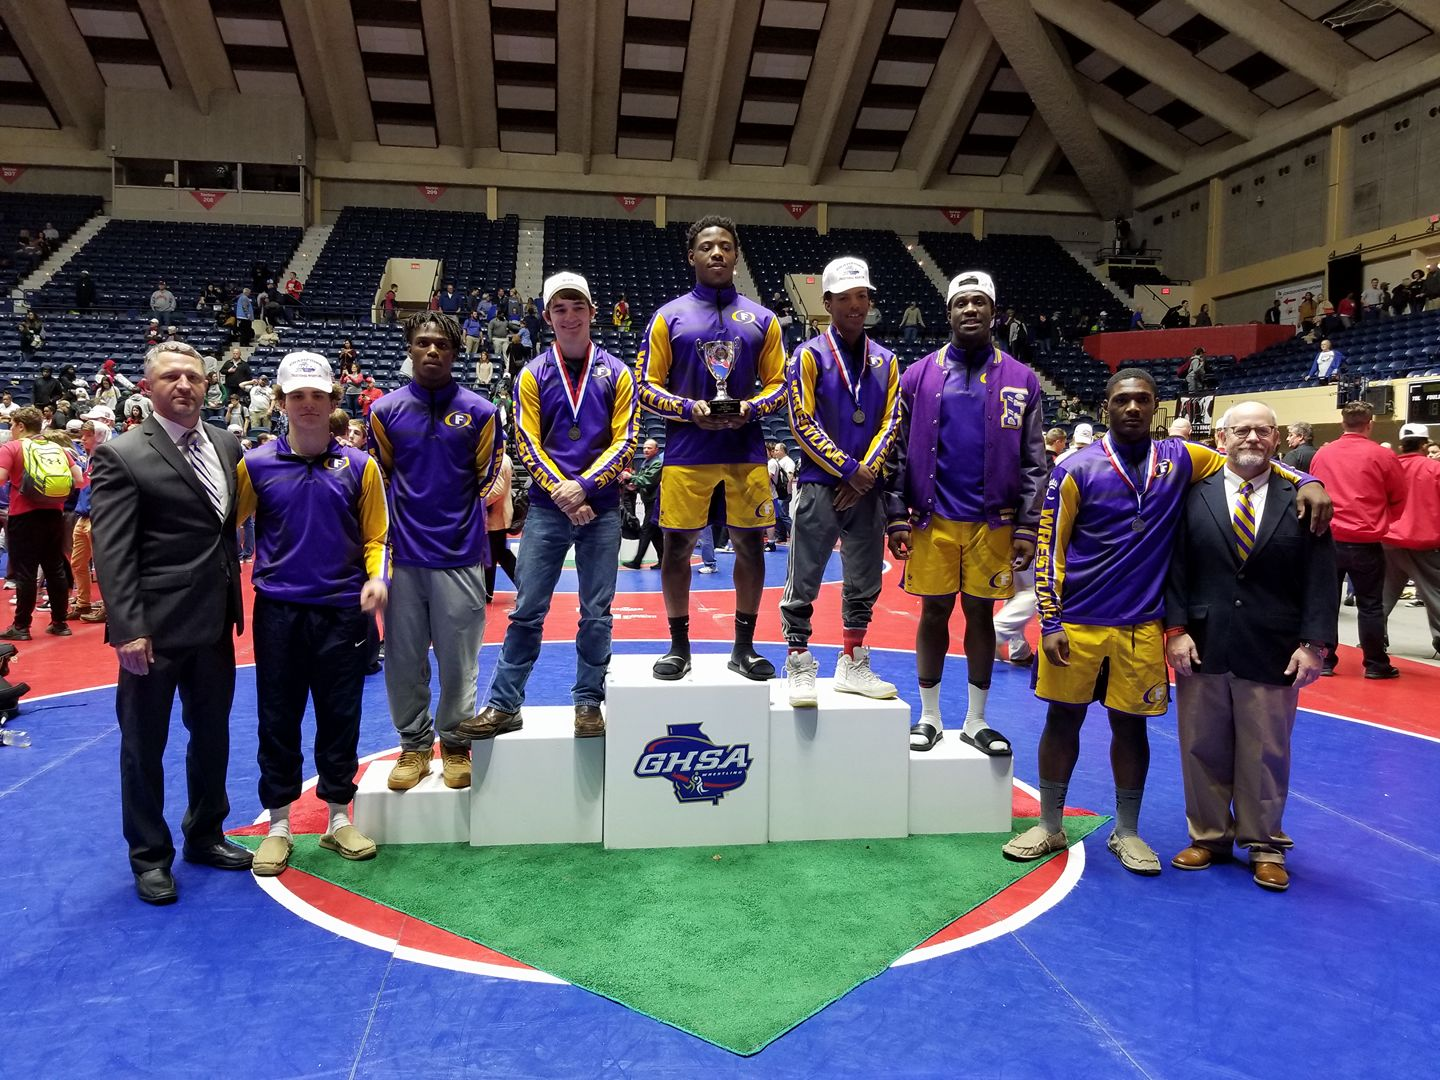 FHS Wrestlers Finish as AA State Runner-up with 4 Individual State Champions